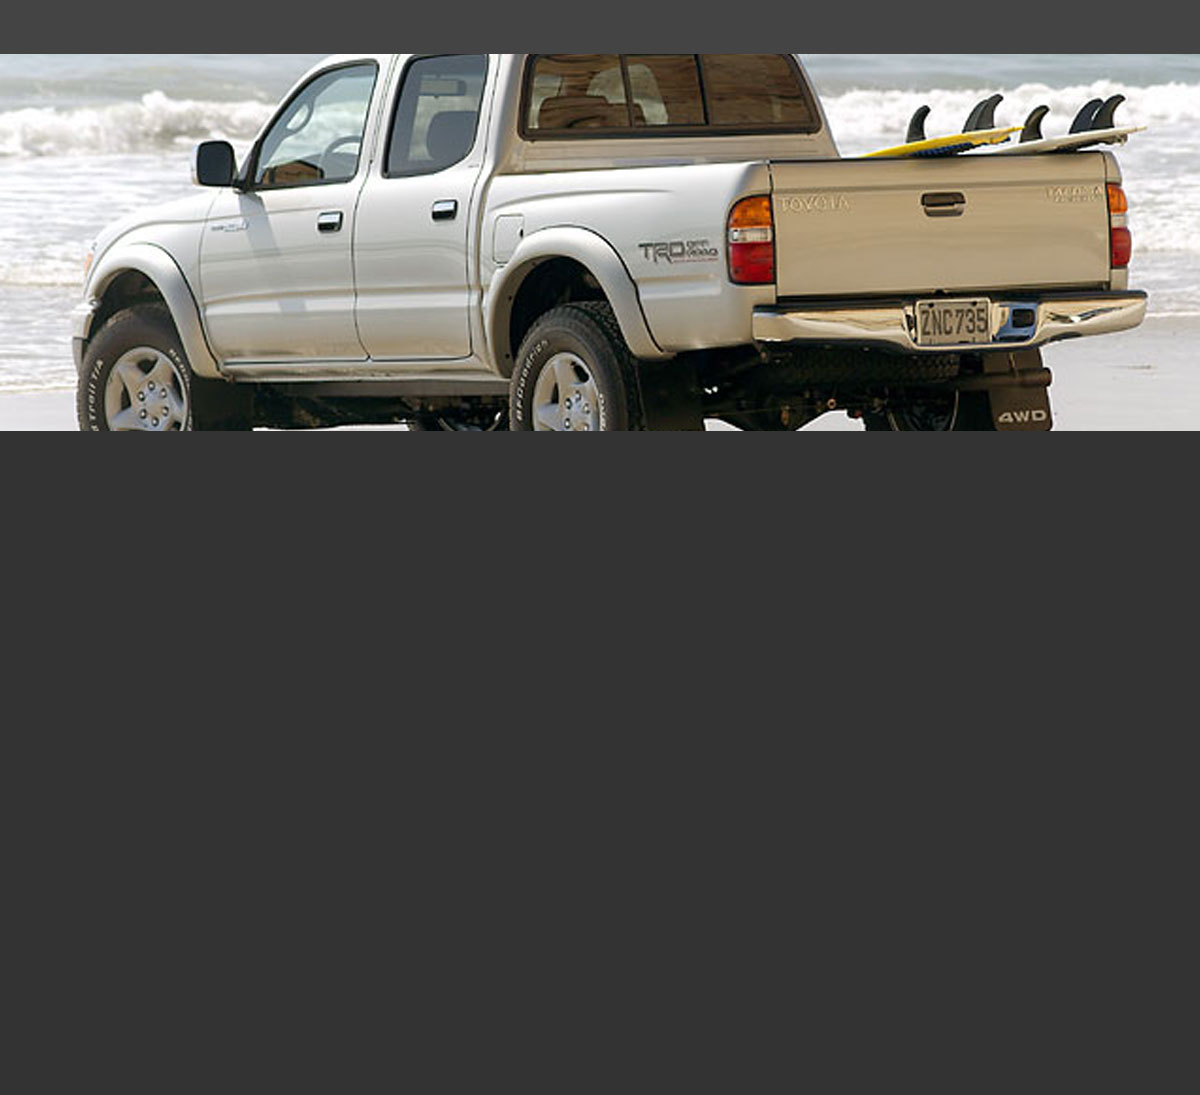 Lincoln Used Cars Financing For Sale San Diego Ivan S Trucks And Cars